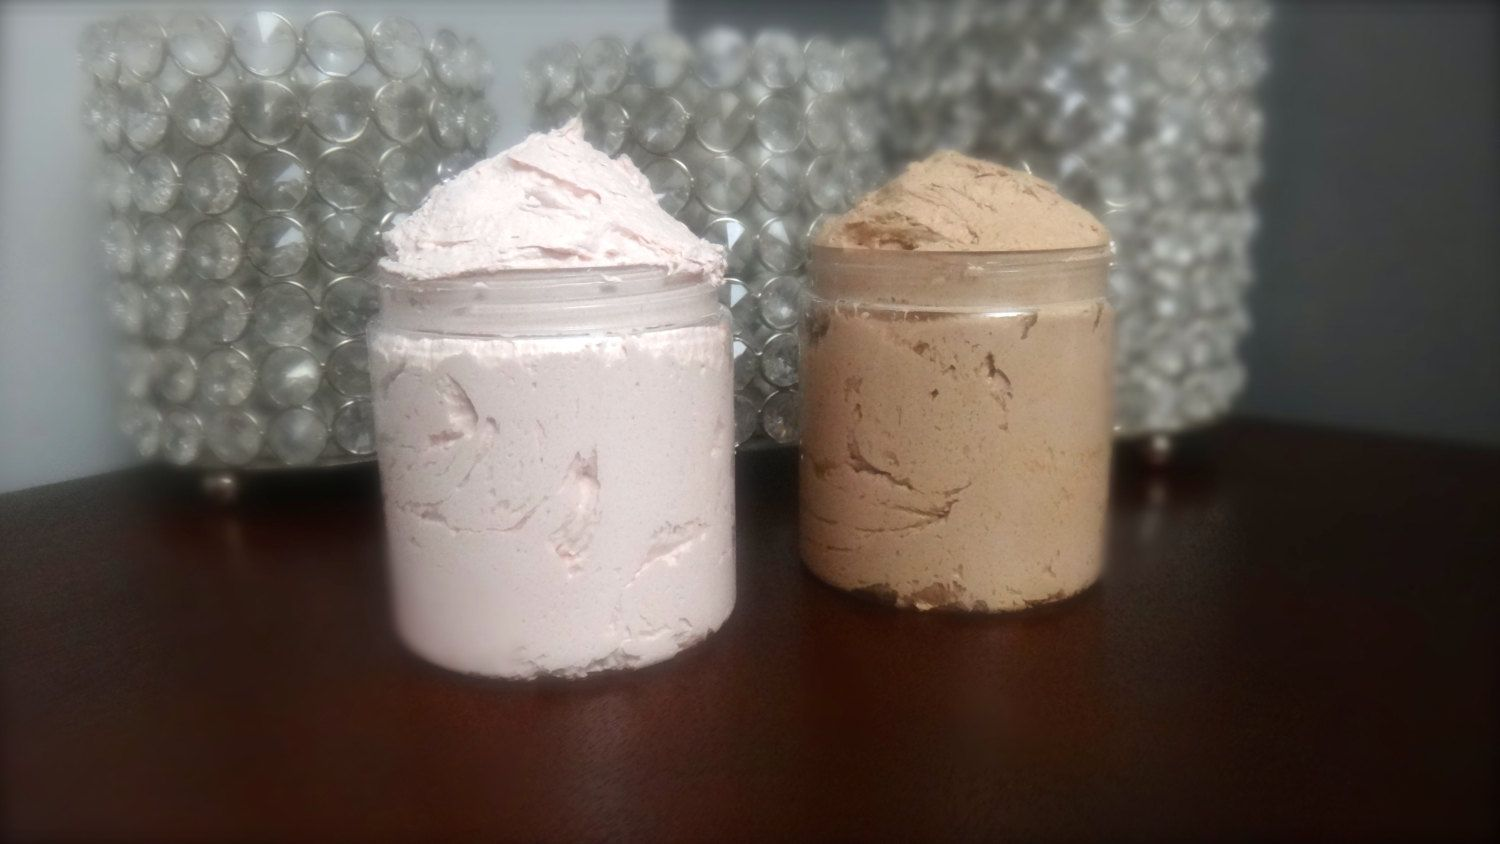 Whipped Soap/Chocolate/Rose Kaolin Clay/Activated Charcoal/Body Mousse/Moussed Soap/Sugar Blend/Luxury soap/Foaming Bath Whip by BodyIncProducts on Etsy